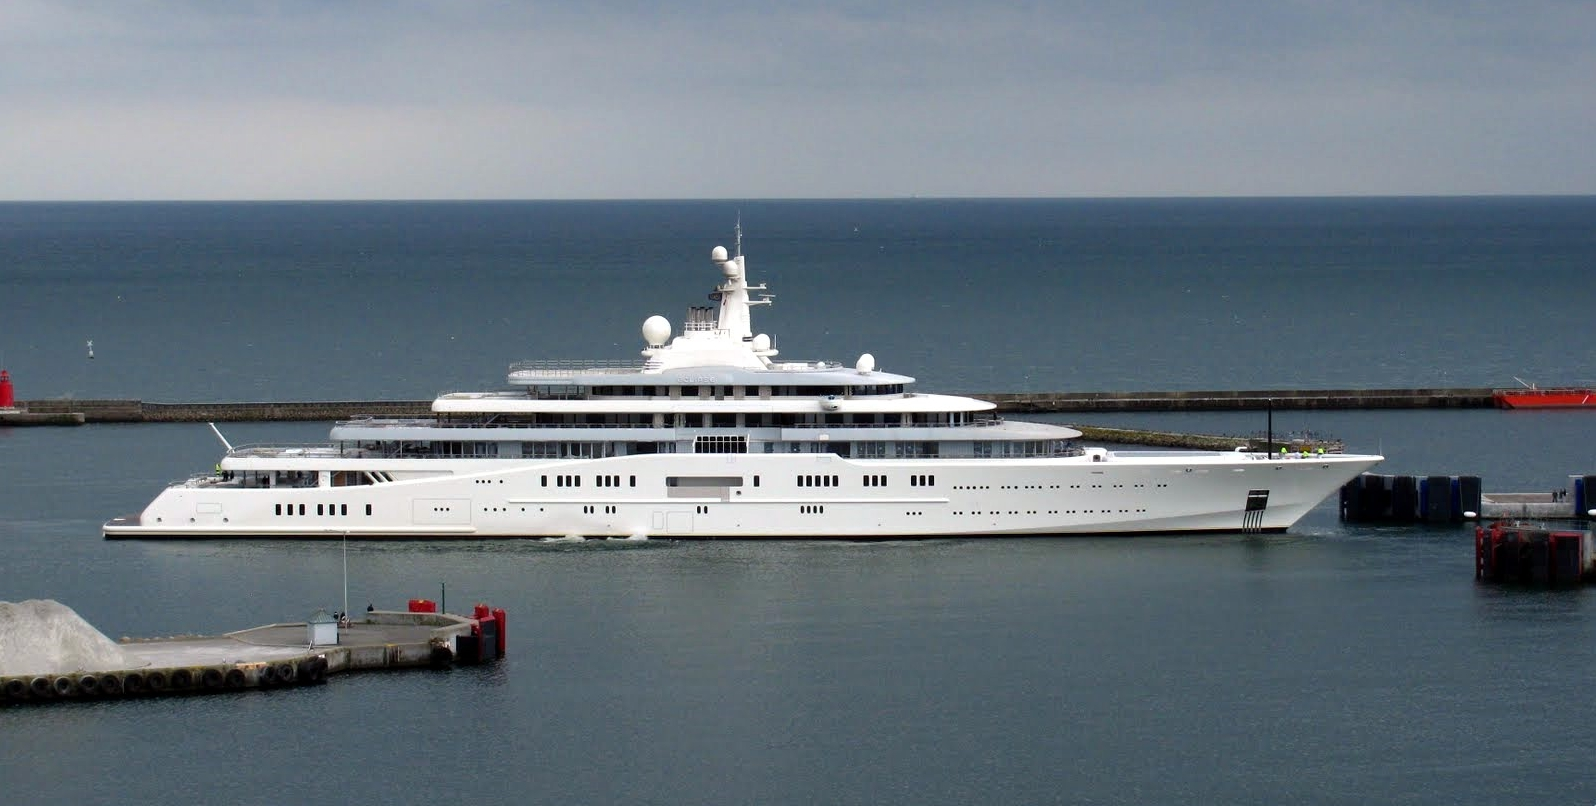 Picture Of Motor Yacht ECLIPSE In Denmark Superyachts News Luxury Yachts Charter Amp Yachts